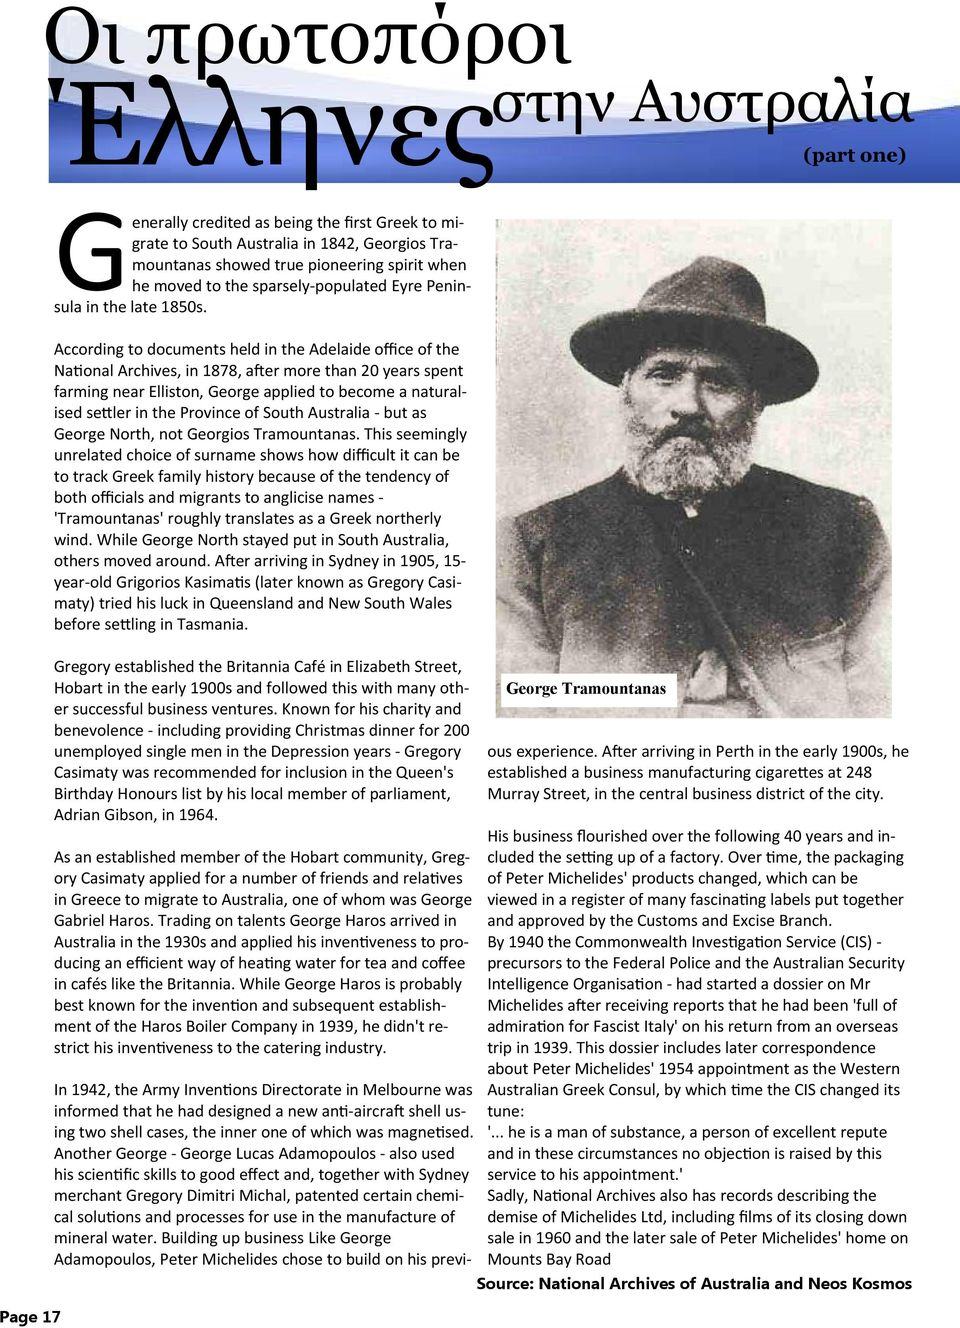 According to documents held in the Adelaide office of the Na onal Archives, in 1878, a er more than 20 years spent farming near Elliston, George applied to become a naturalised se ler in the Province